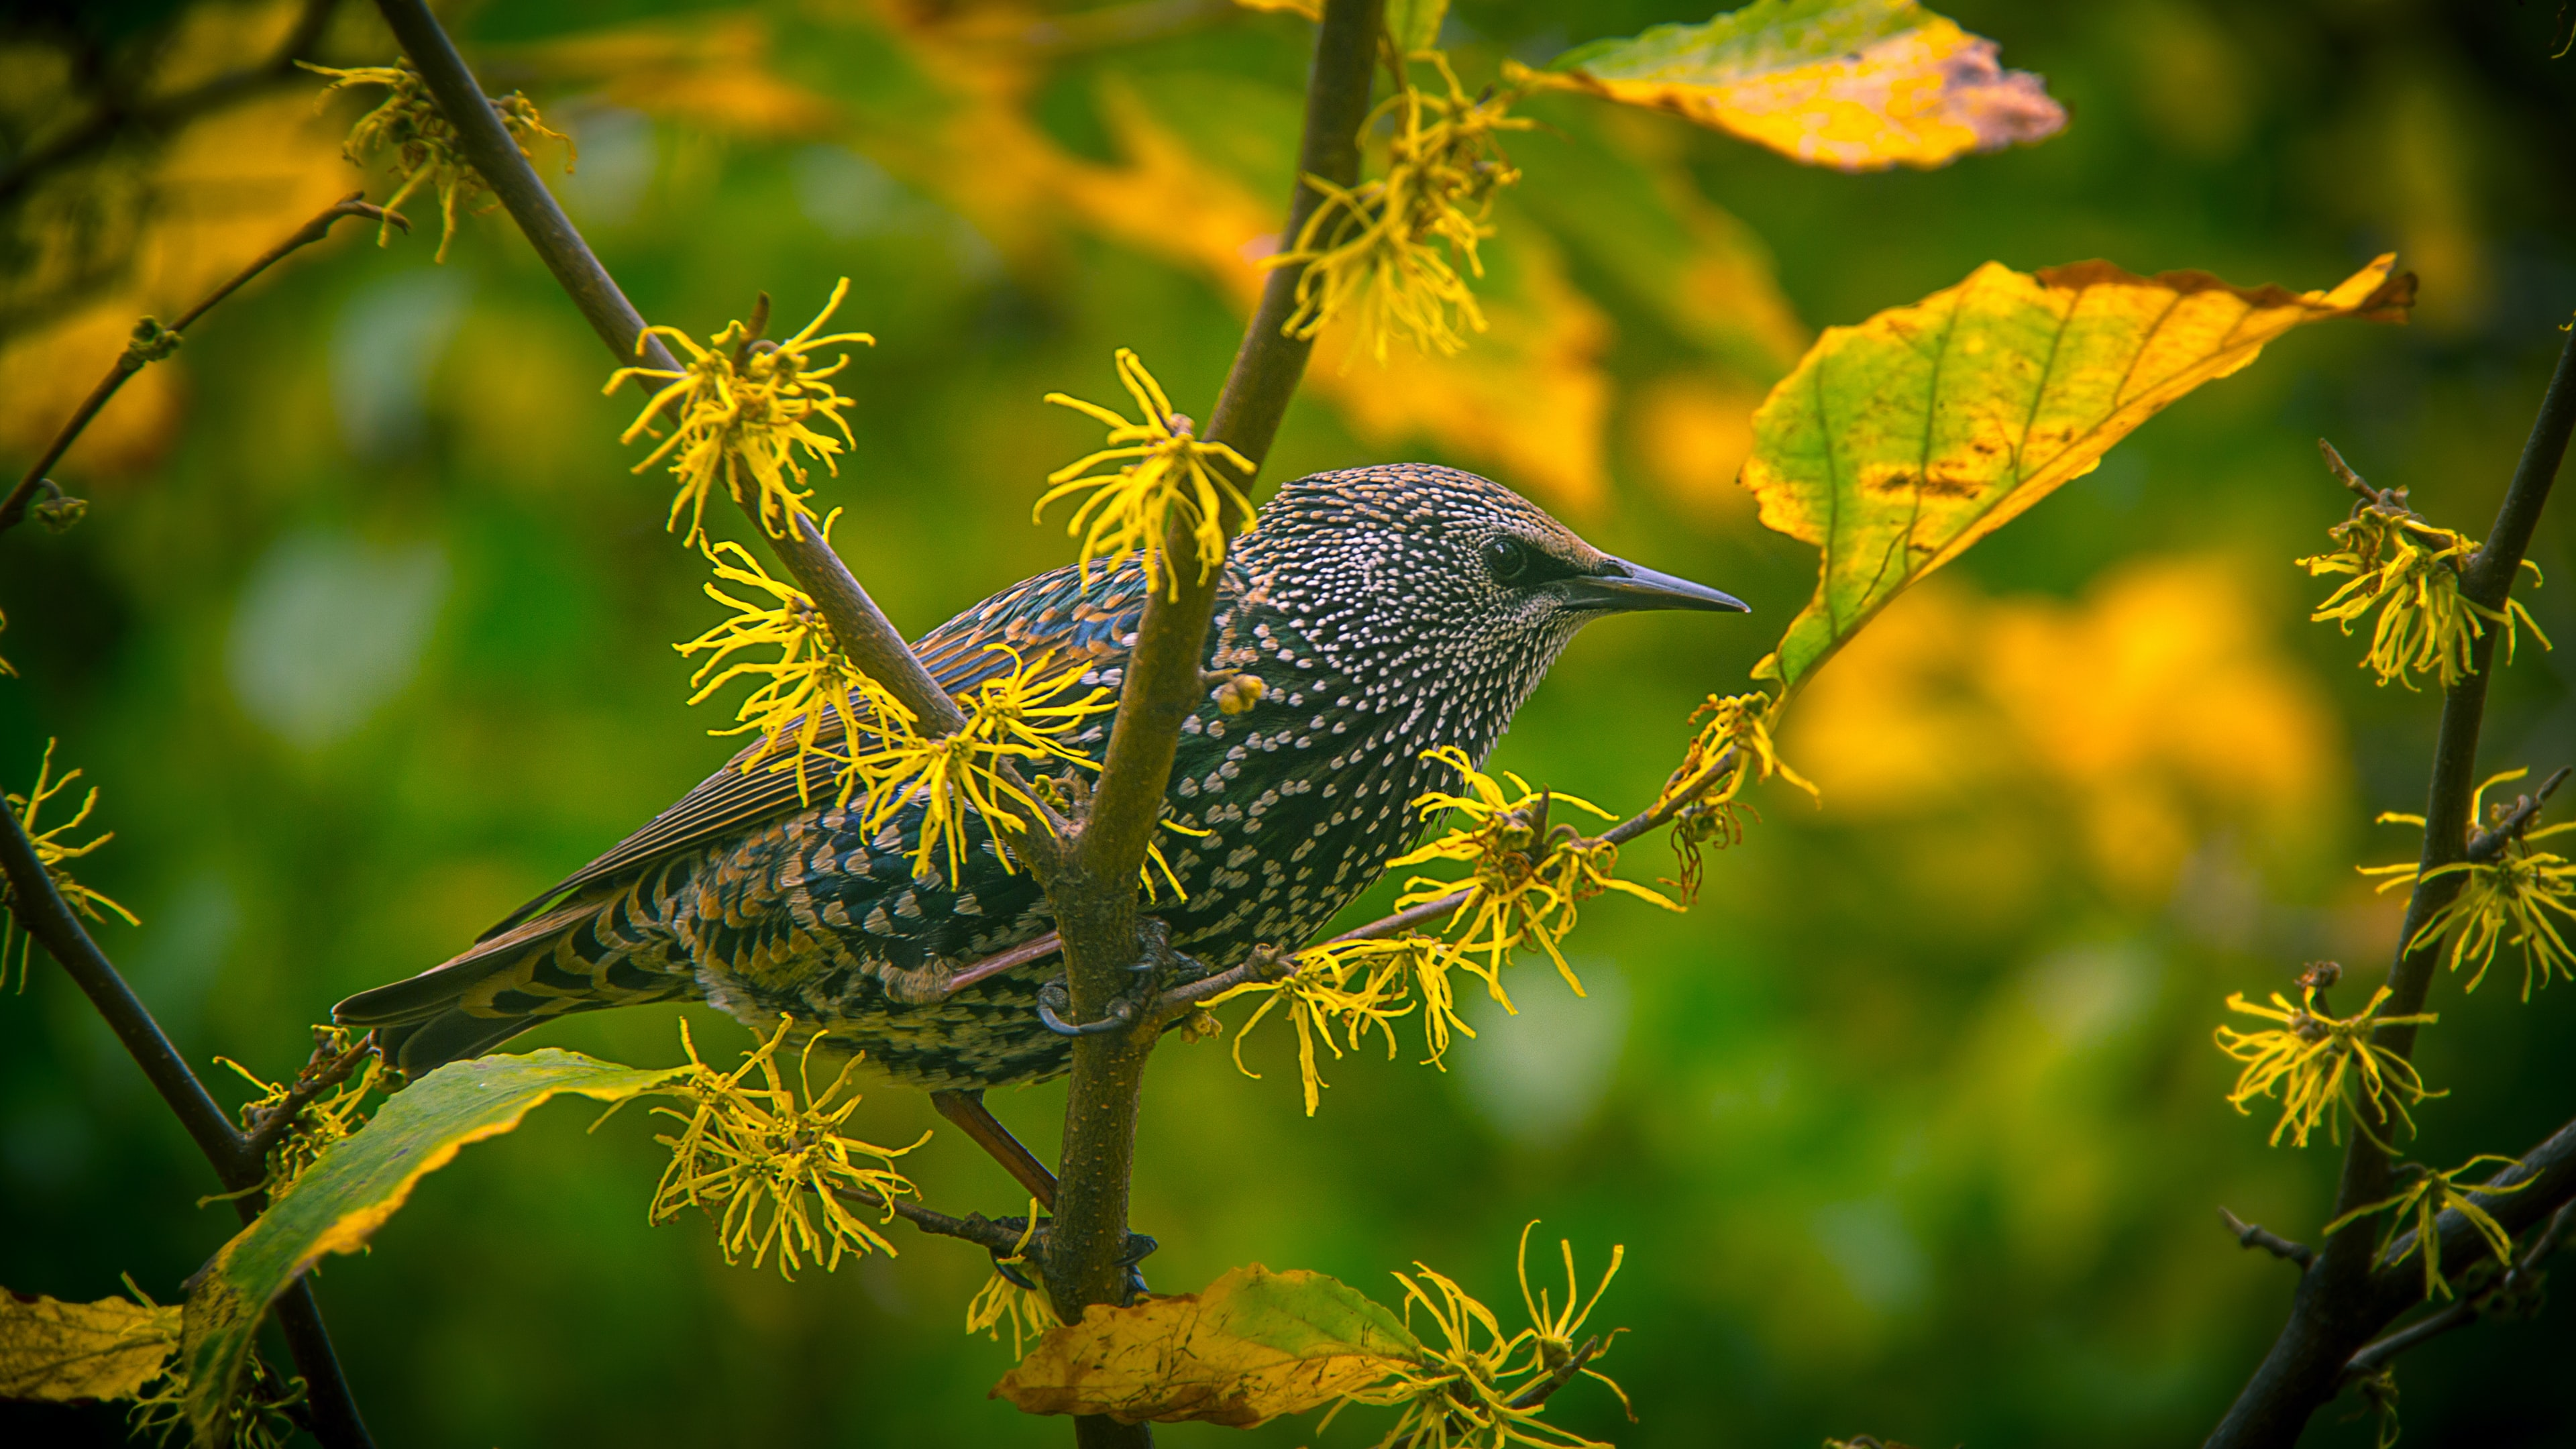 A small bird perched on a branch with yellow withering leaves